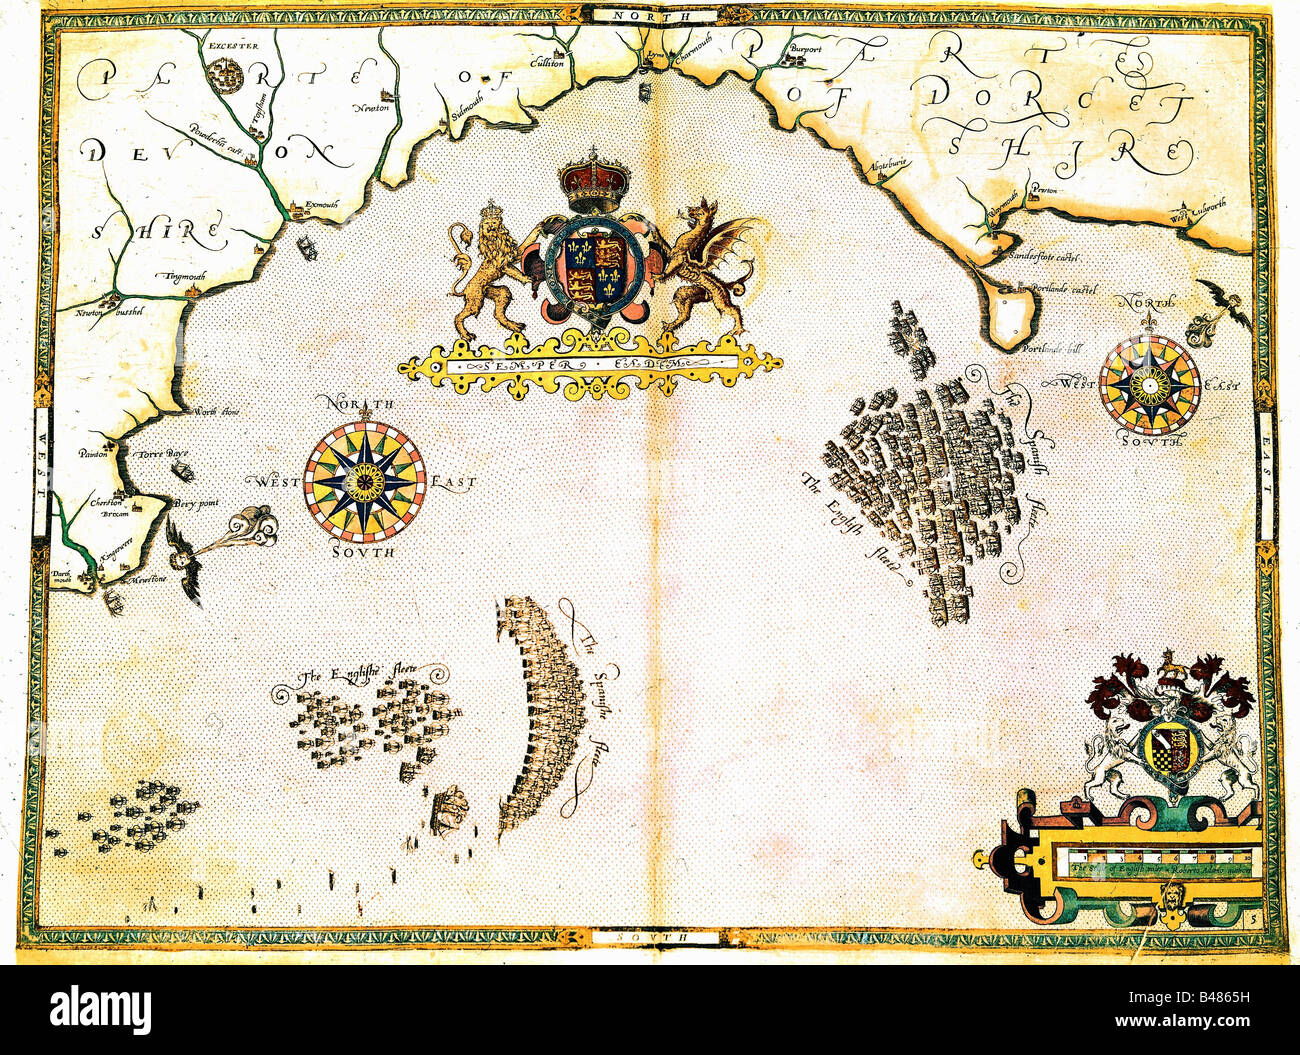 events, Anglo-Spanish War 1585 - 1604, Battle in the English Channel, 20.7.1588 - 28.7.1588, sea chart, 16th century, - Stock Image